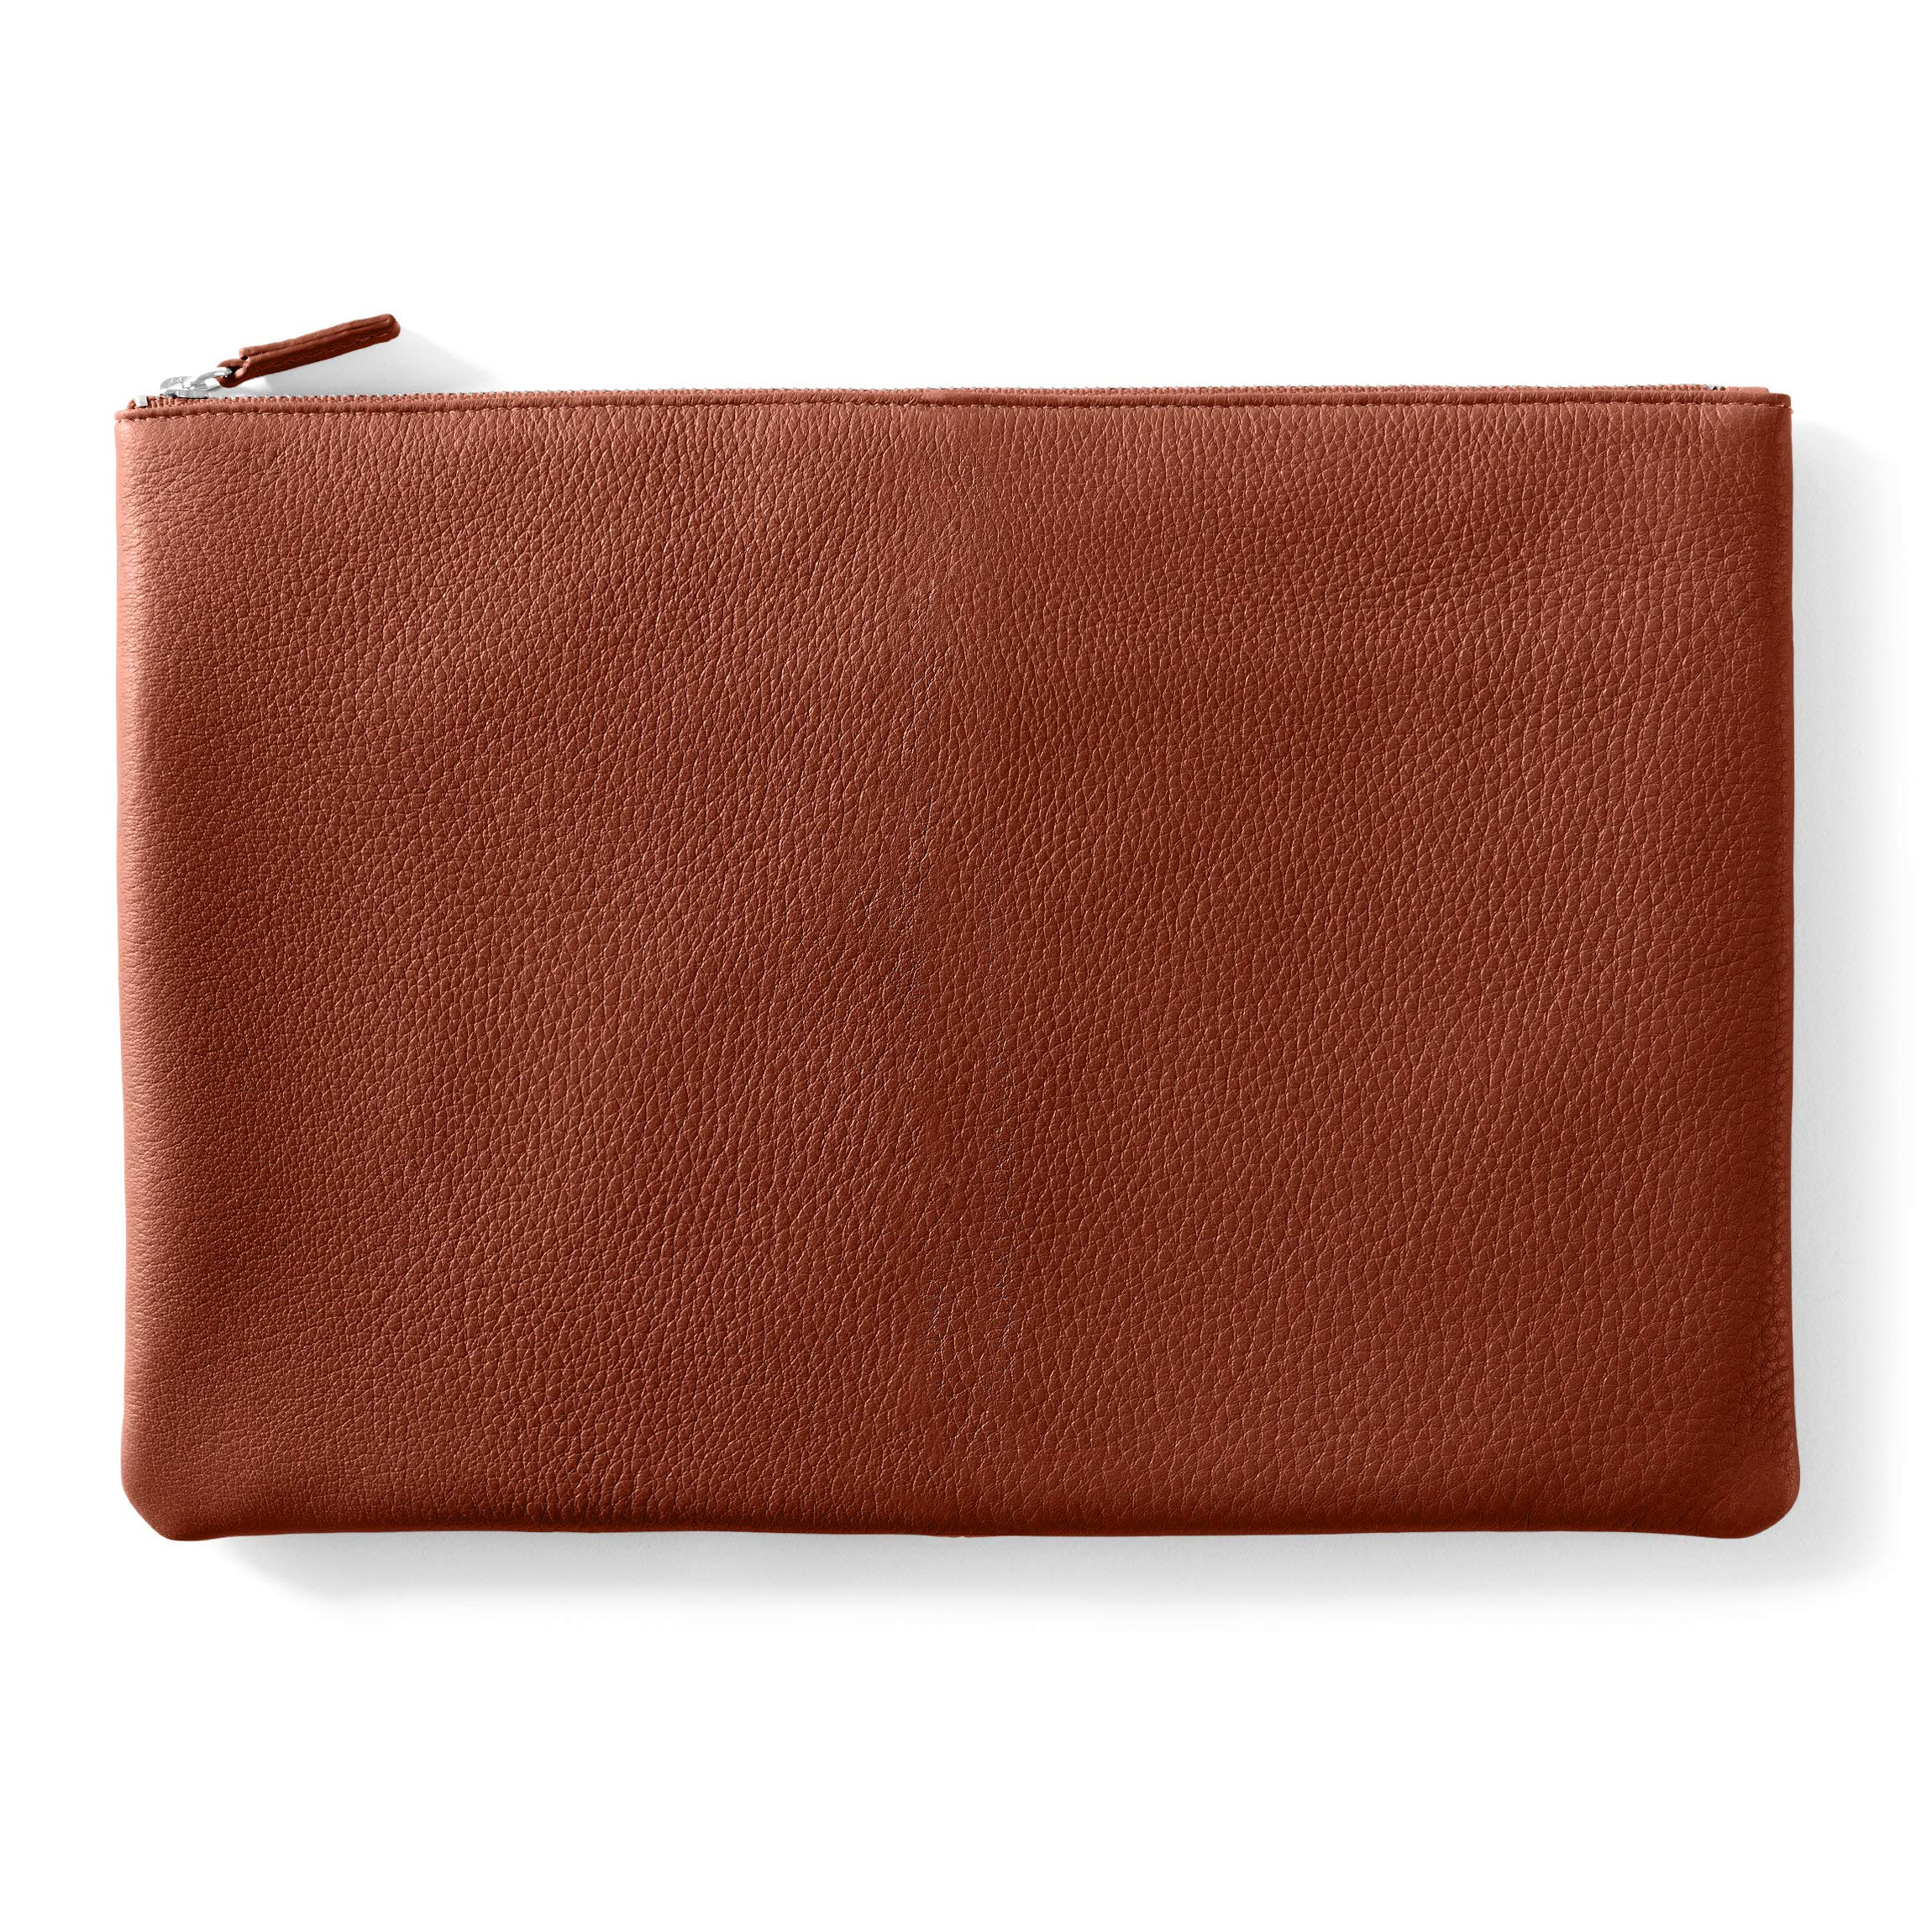 Large Pouch - Full Grain Leather Leather - Terracotta (Orange)